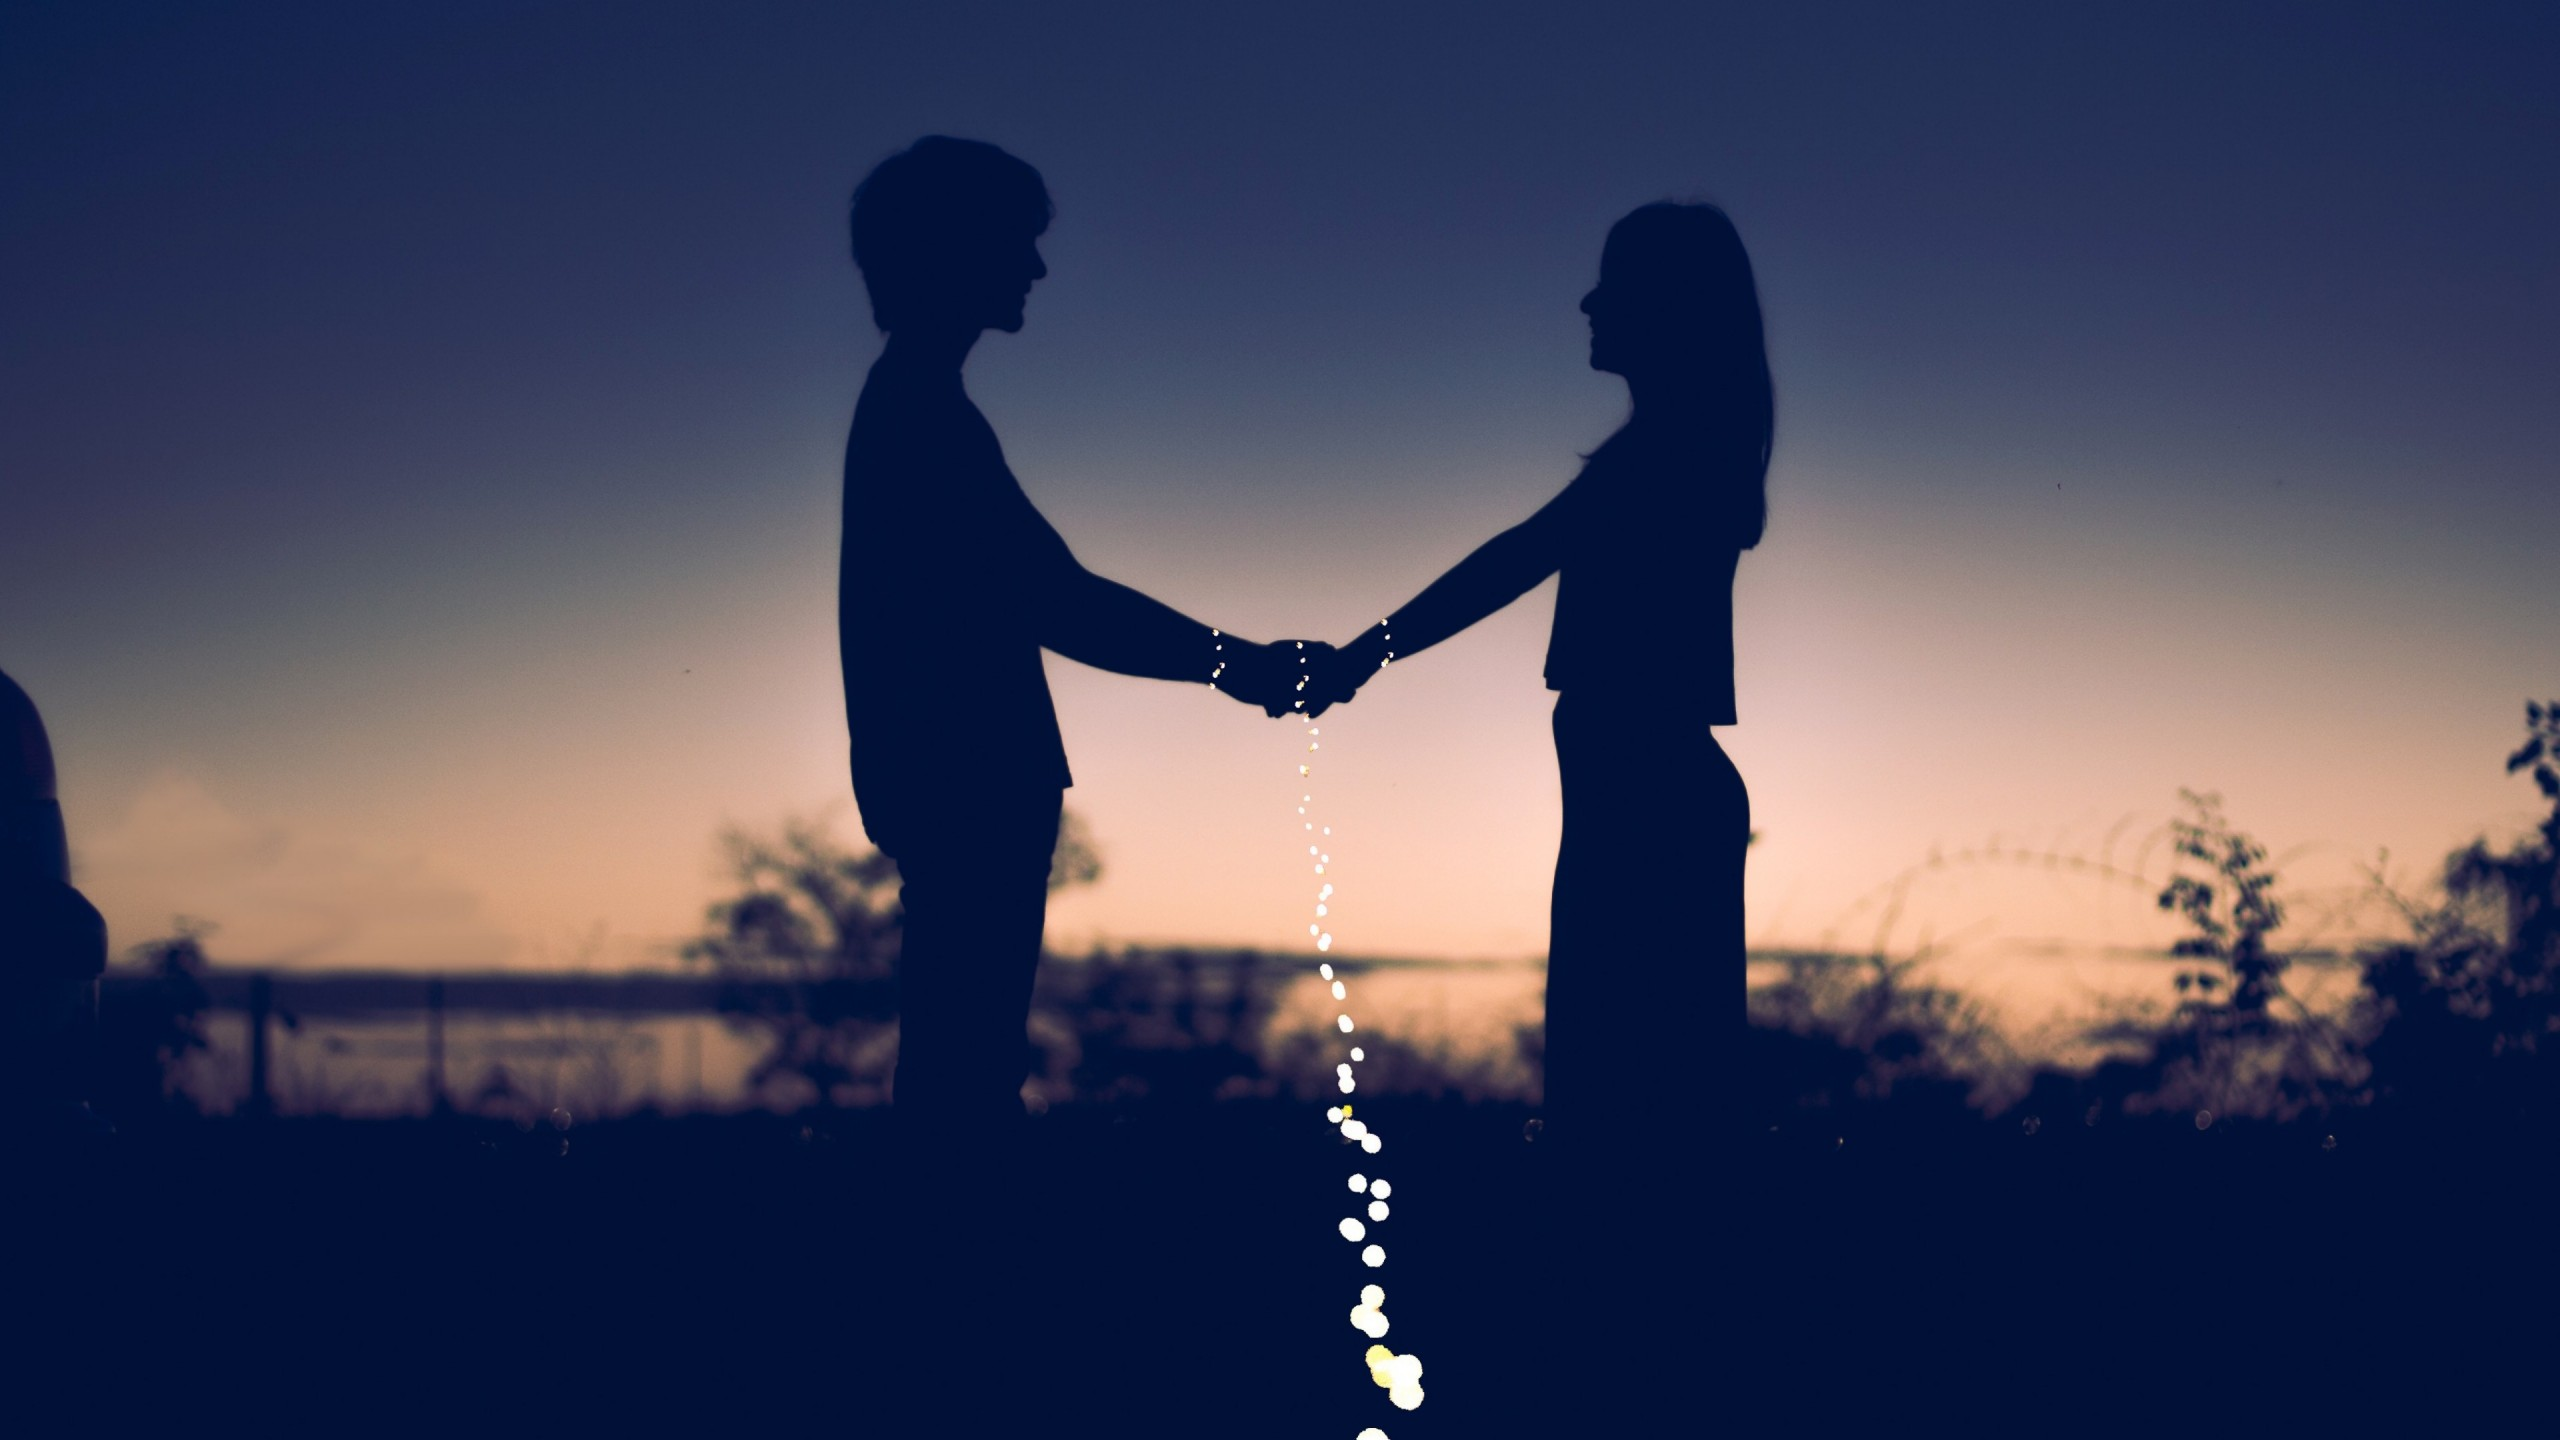 Stock Images Love Image Couple 4k Stock Images 15629 Page 5